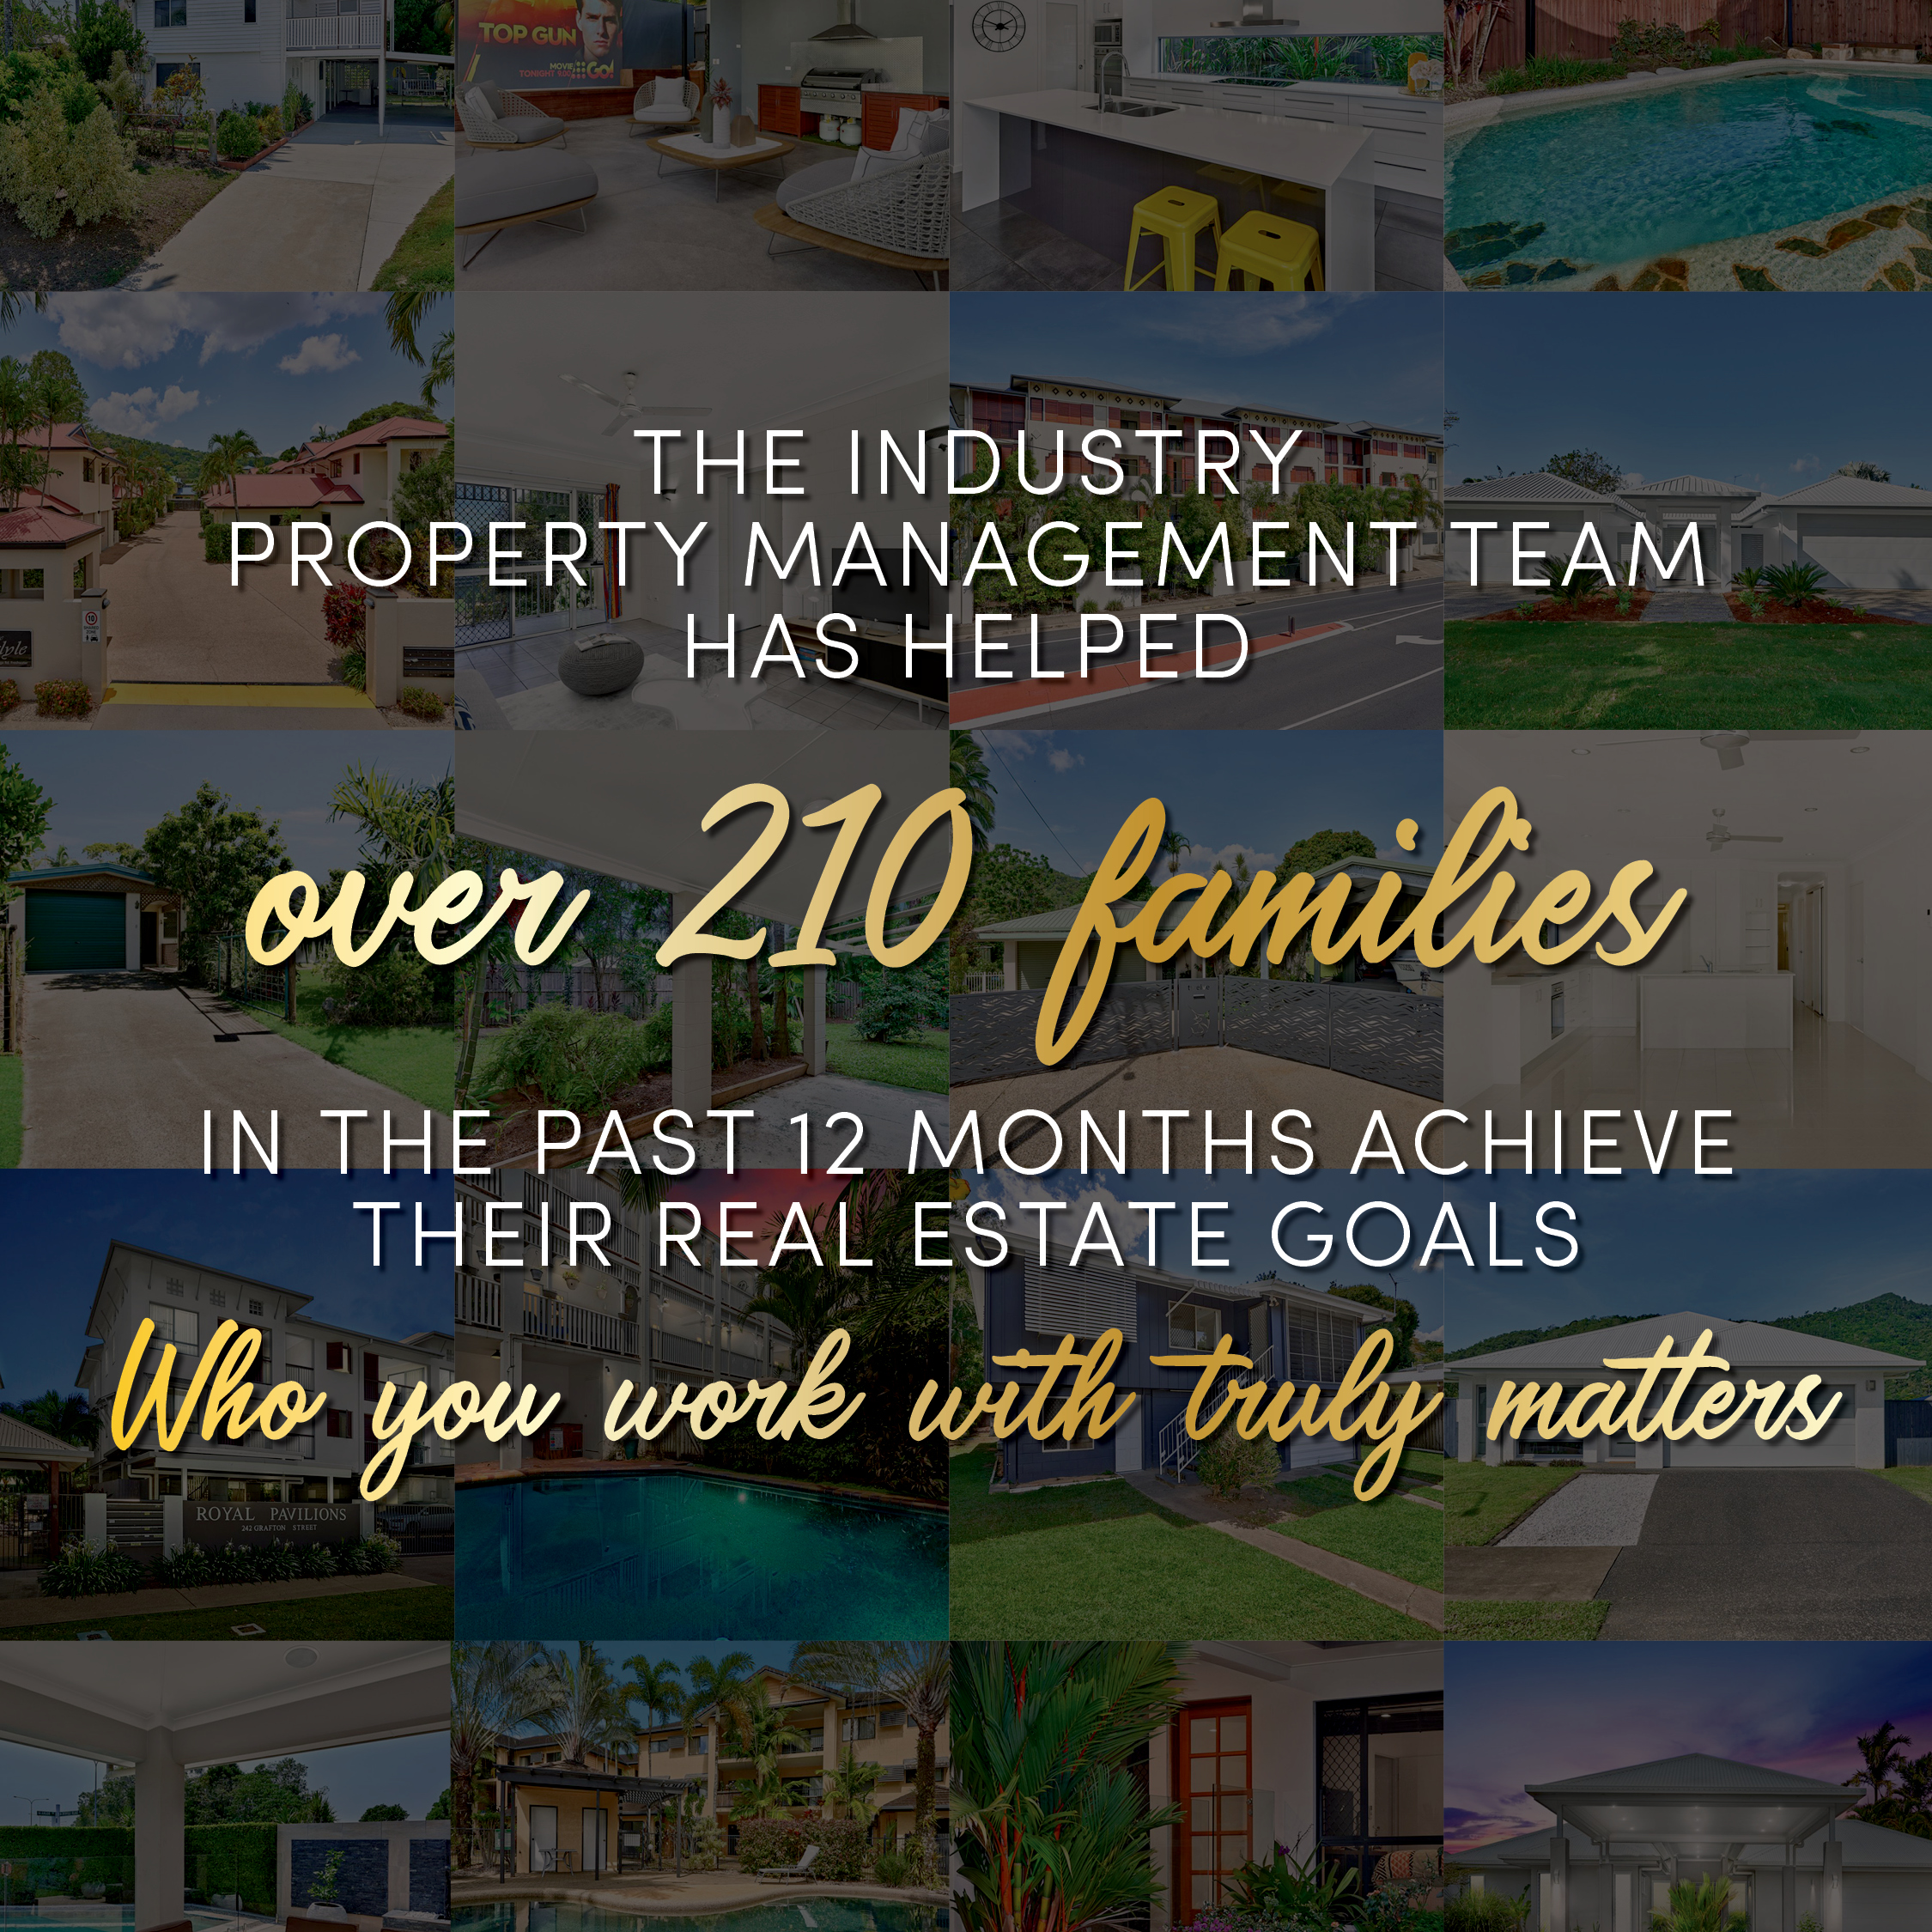 The Industry Property Management Team